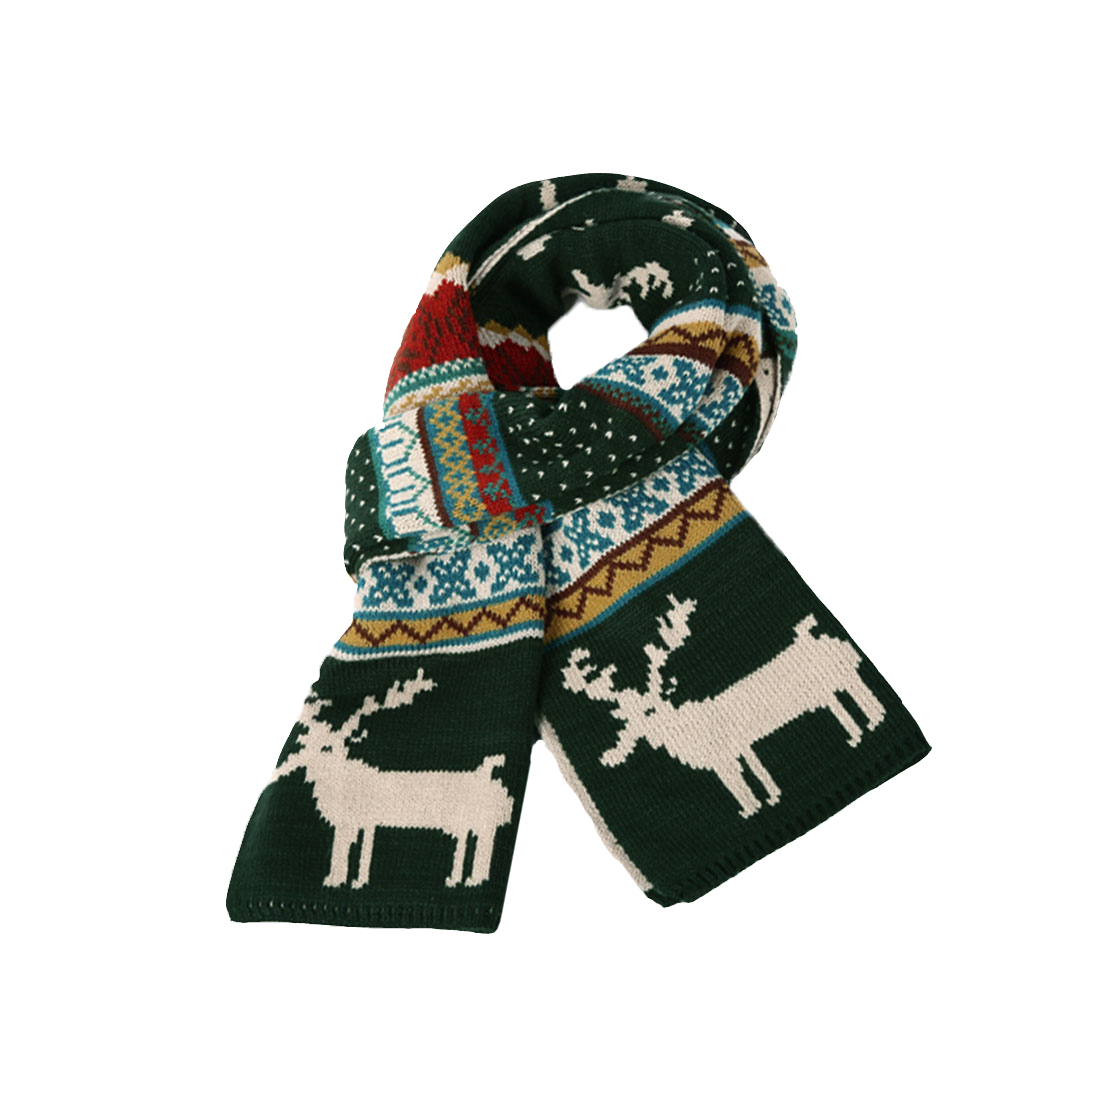 618-WJ010 Mens Deer Pattern Winter Fashion Christmas Knitting Dark Green Scarf